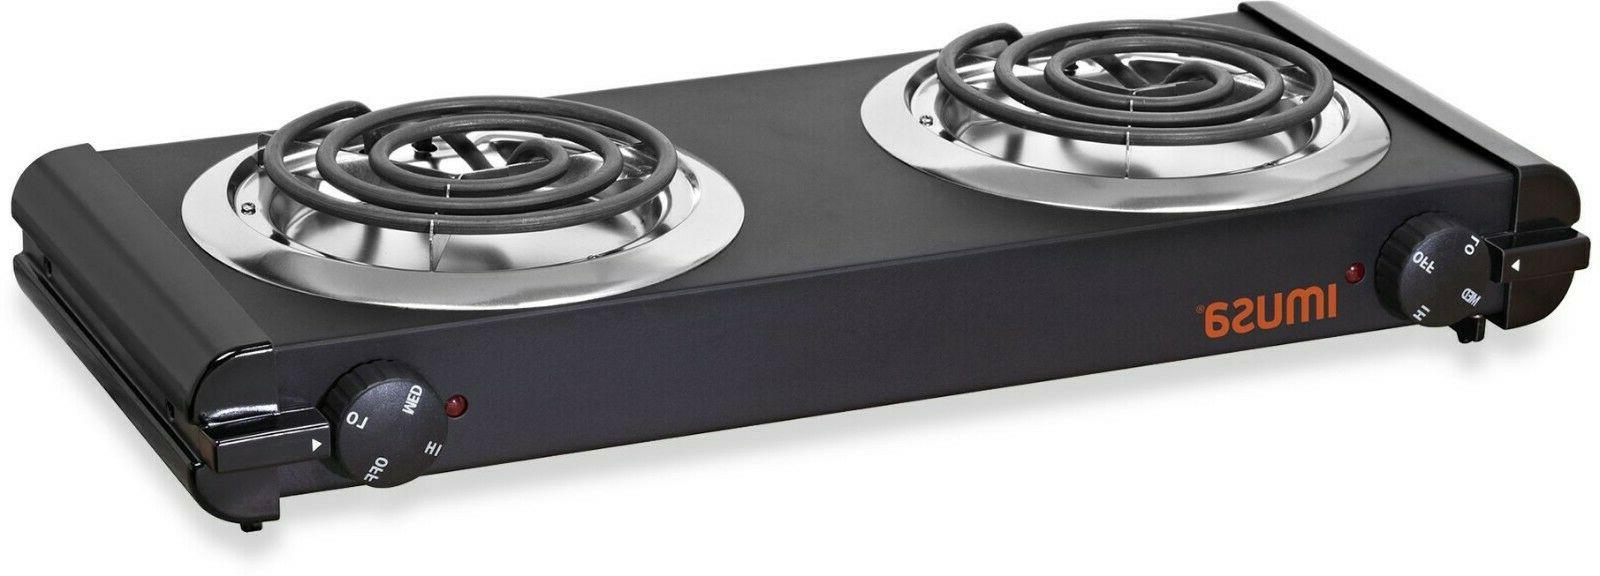 electric double burner hot plate heating cooking